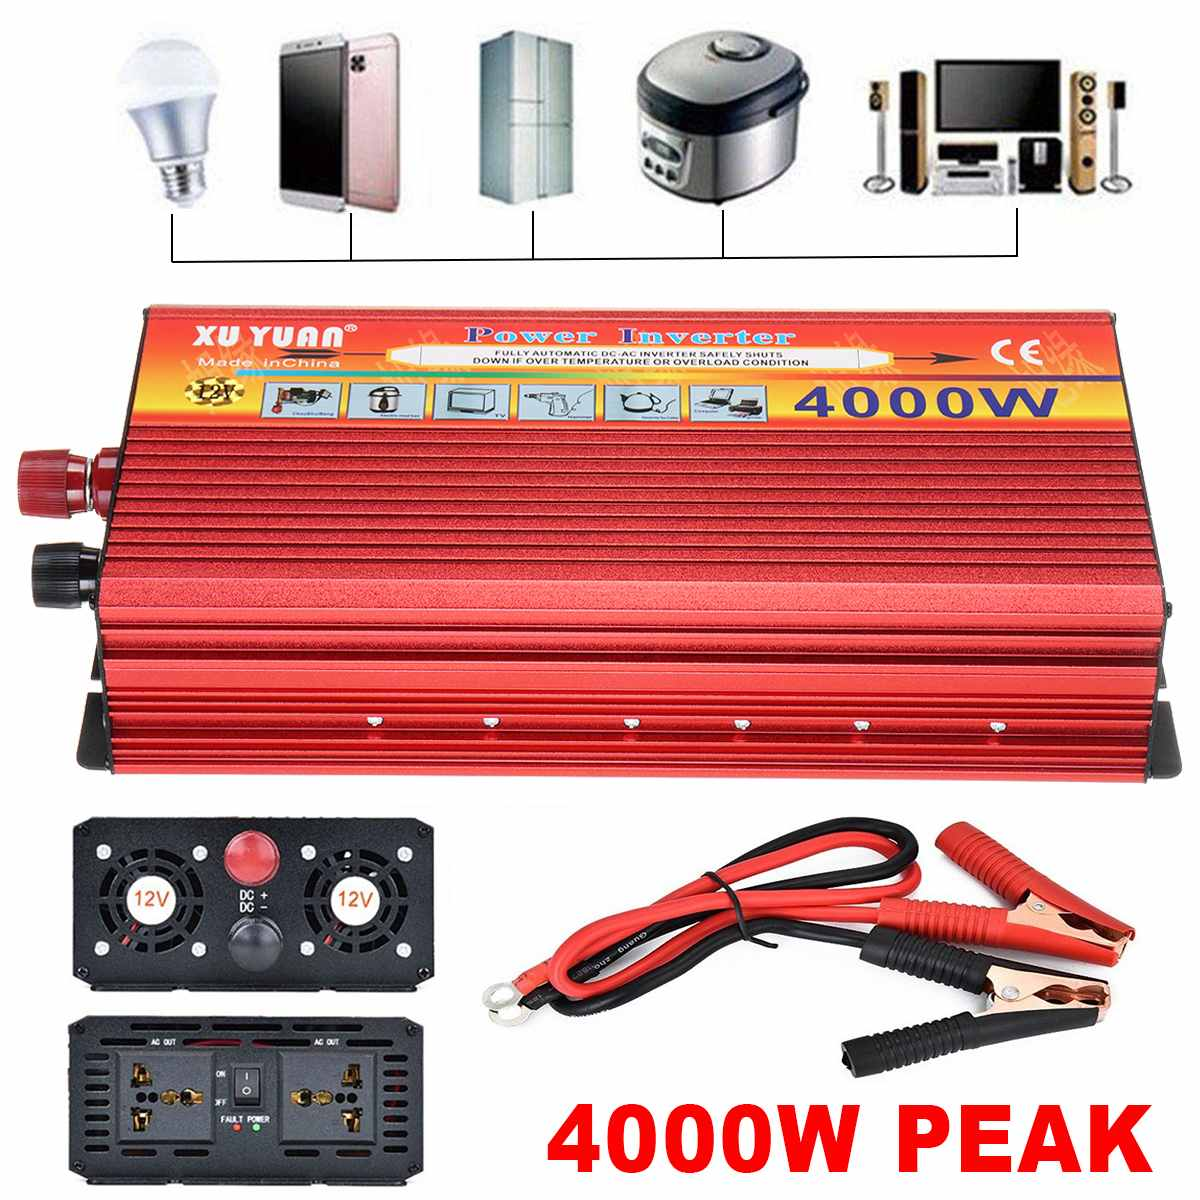 4000W Transformer Inverter Converter Portable Aotomatic Max Power Switch Sine Wave Car Charger DC 12V To110V 240V AC USB Vehicle4000W Transformer Inverter Converter Portable Aotomatic Max Power Switch Sine Wave Car Charger DC 12V To110V 240V AC USB Vehicle